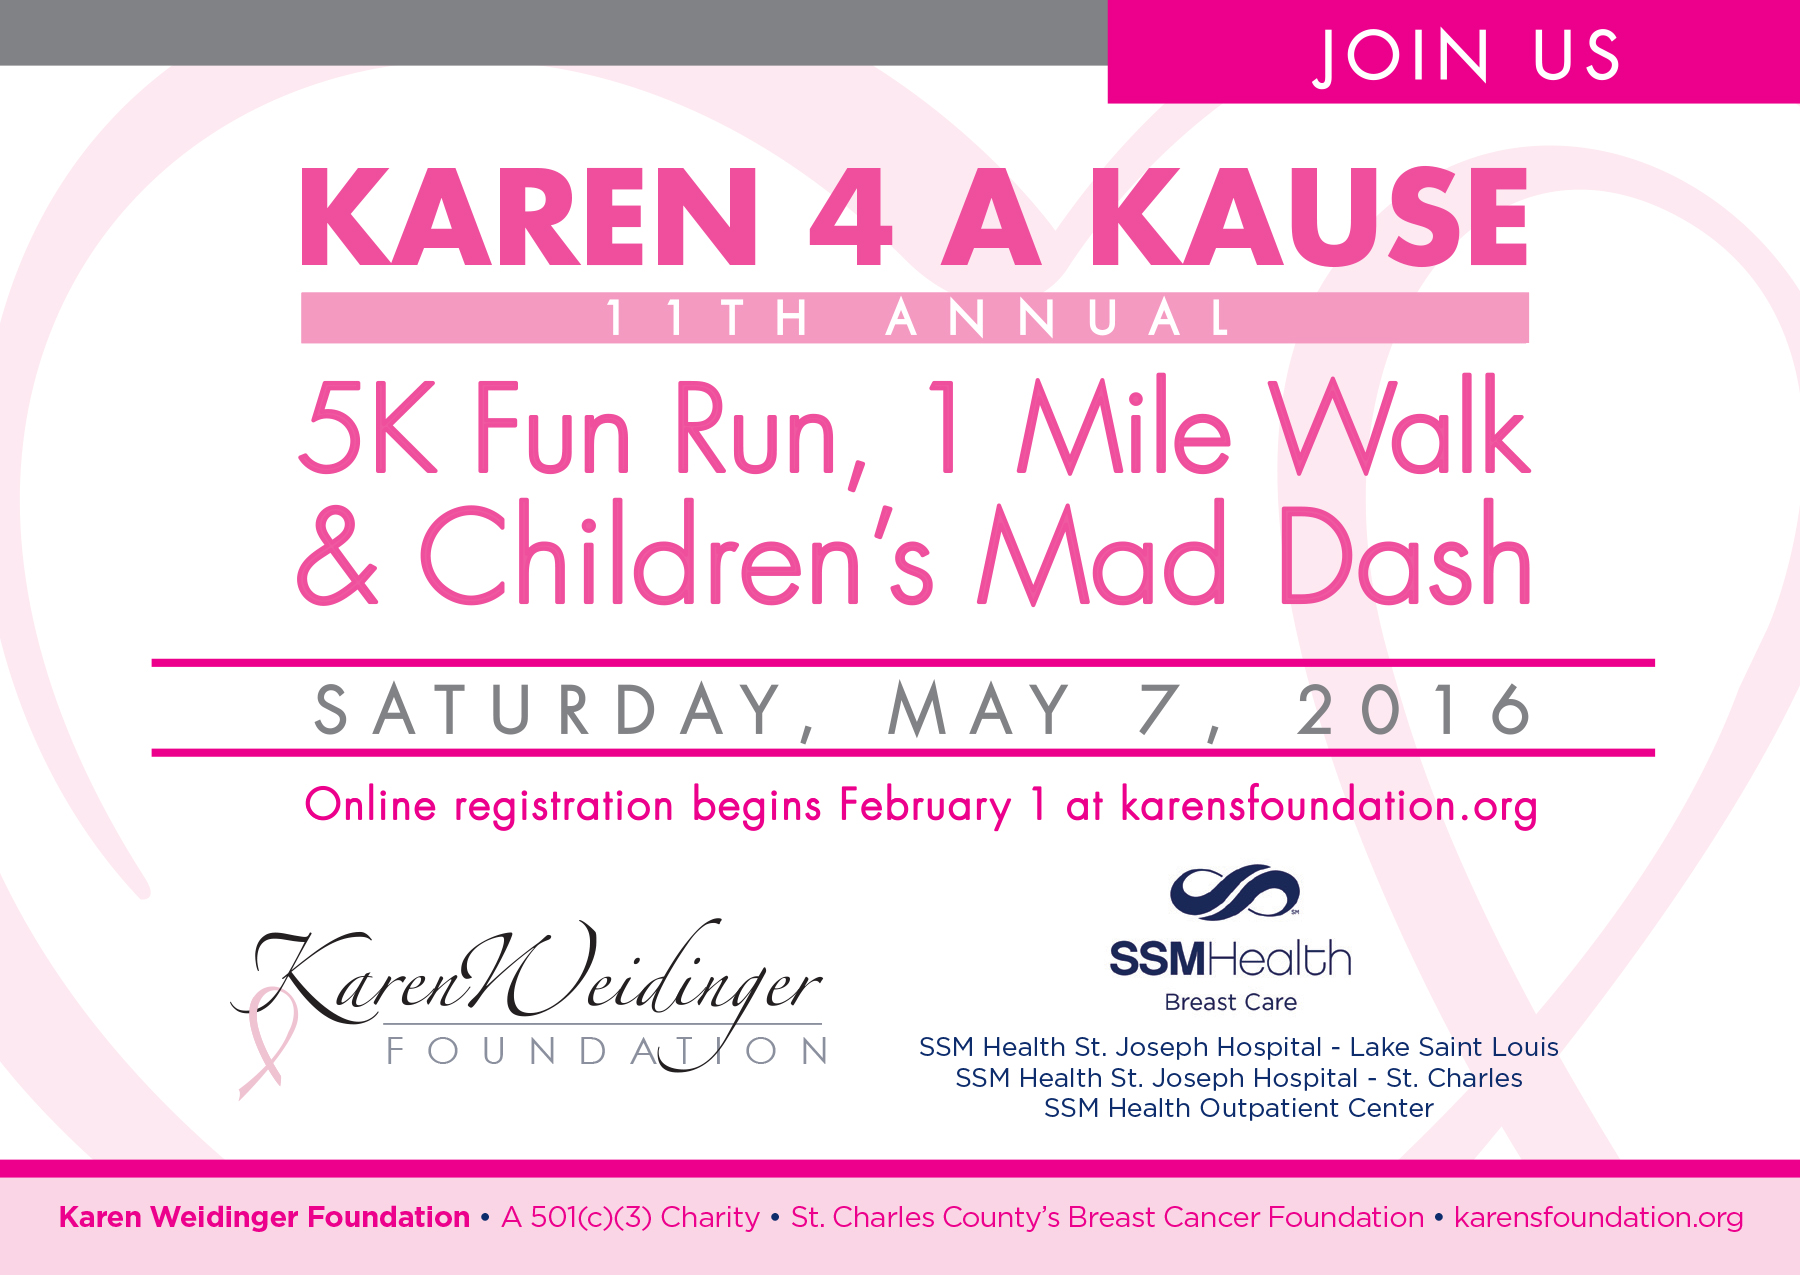 2016 Karen 4 A Kause Save the Date-1